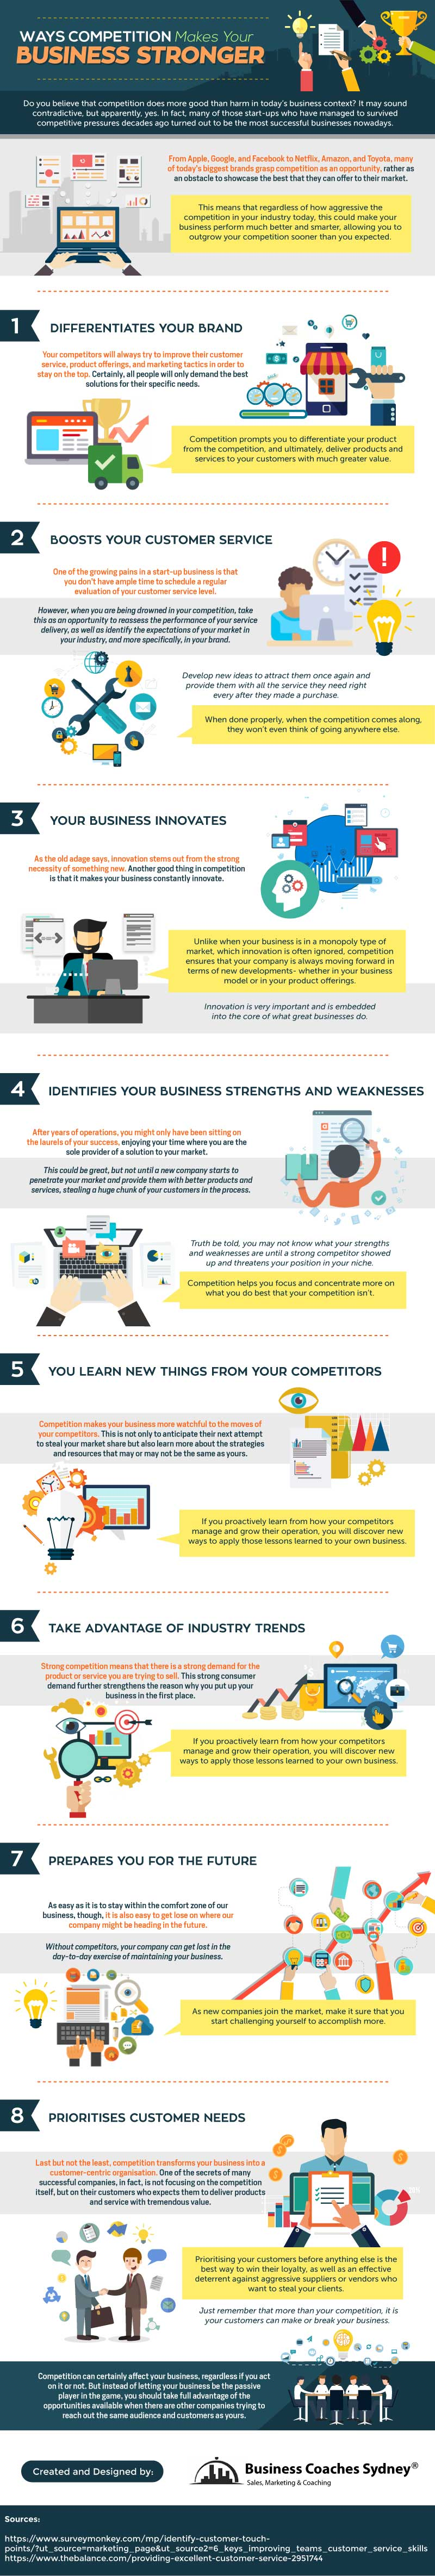 Ways-Competition-Makes-Your-Business-Stronger